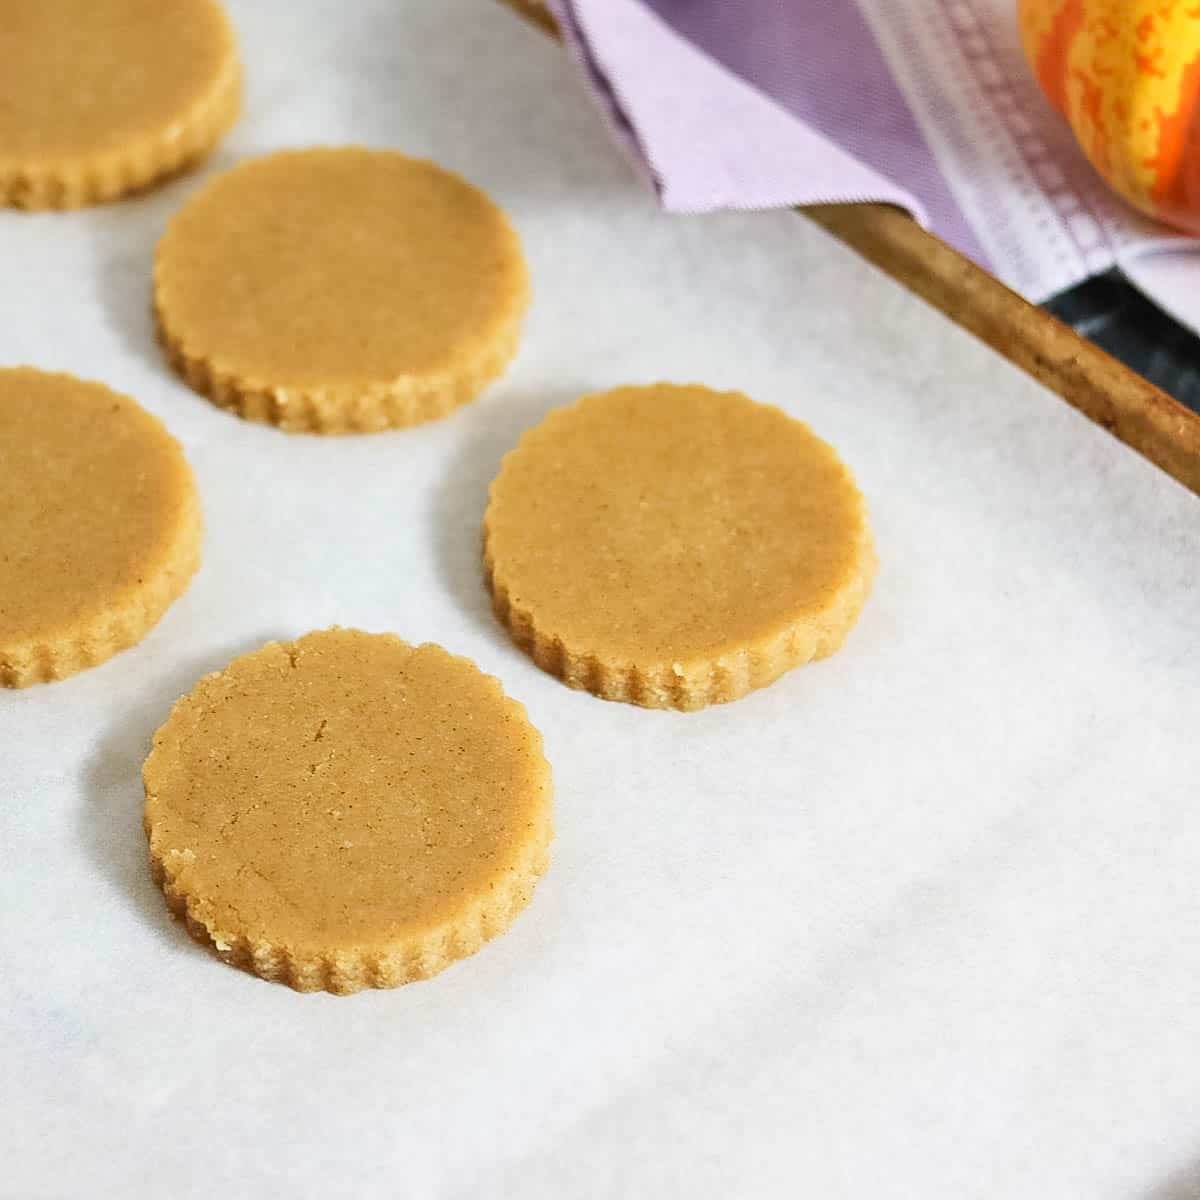 Iced Pumpkin Sugar Cookies (Vegan, Grain-Free)